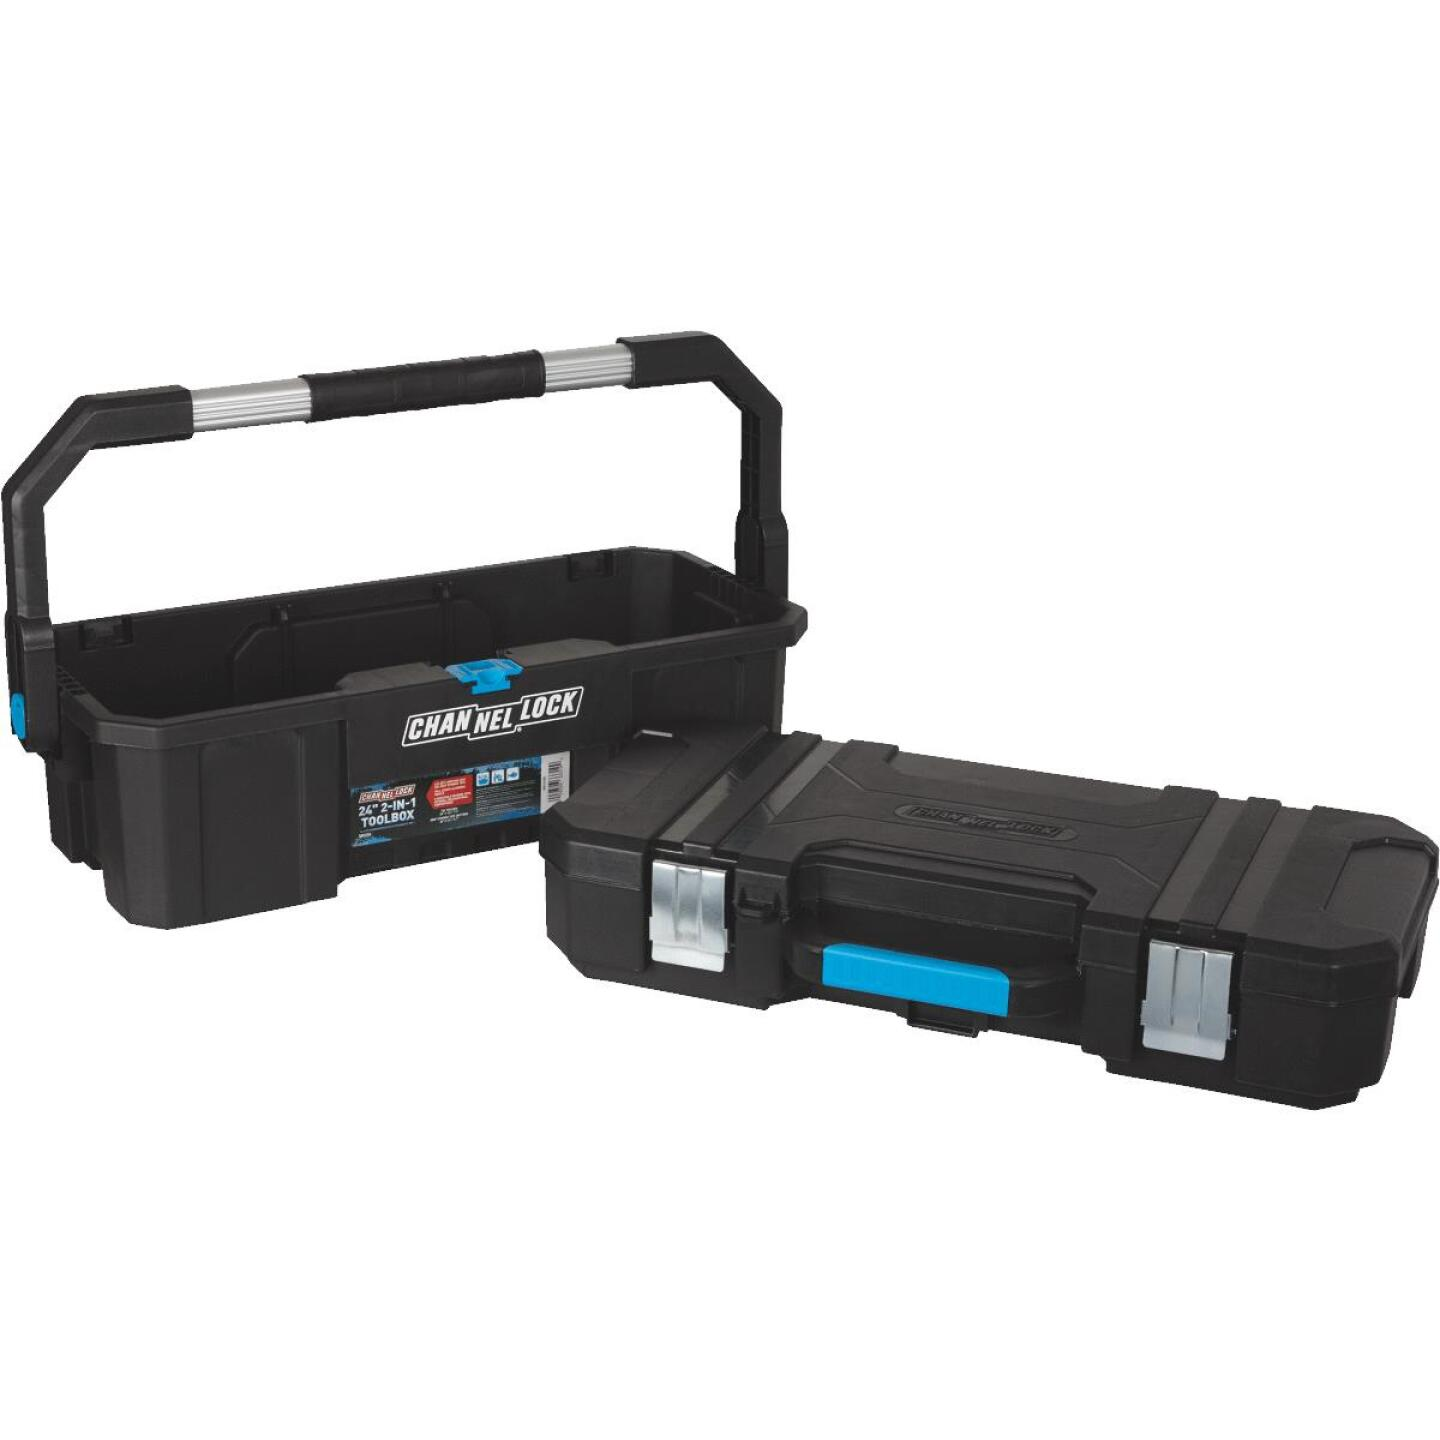 Channellock 24 In. 2-in-1 Toolbox Image 2